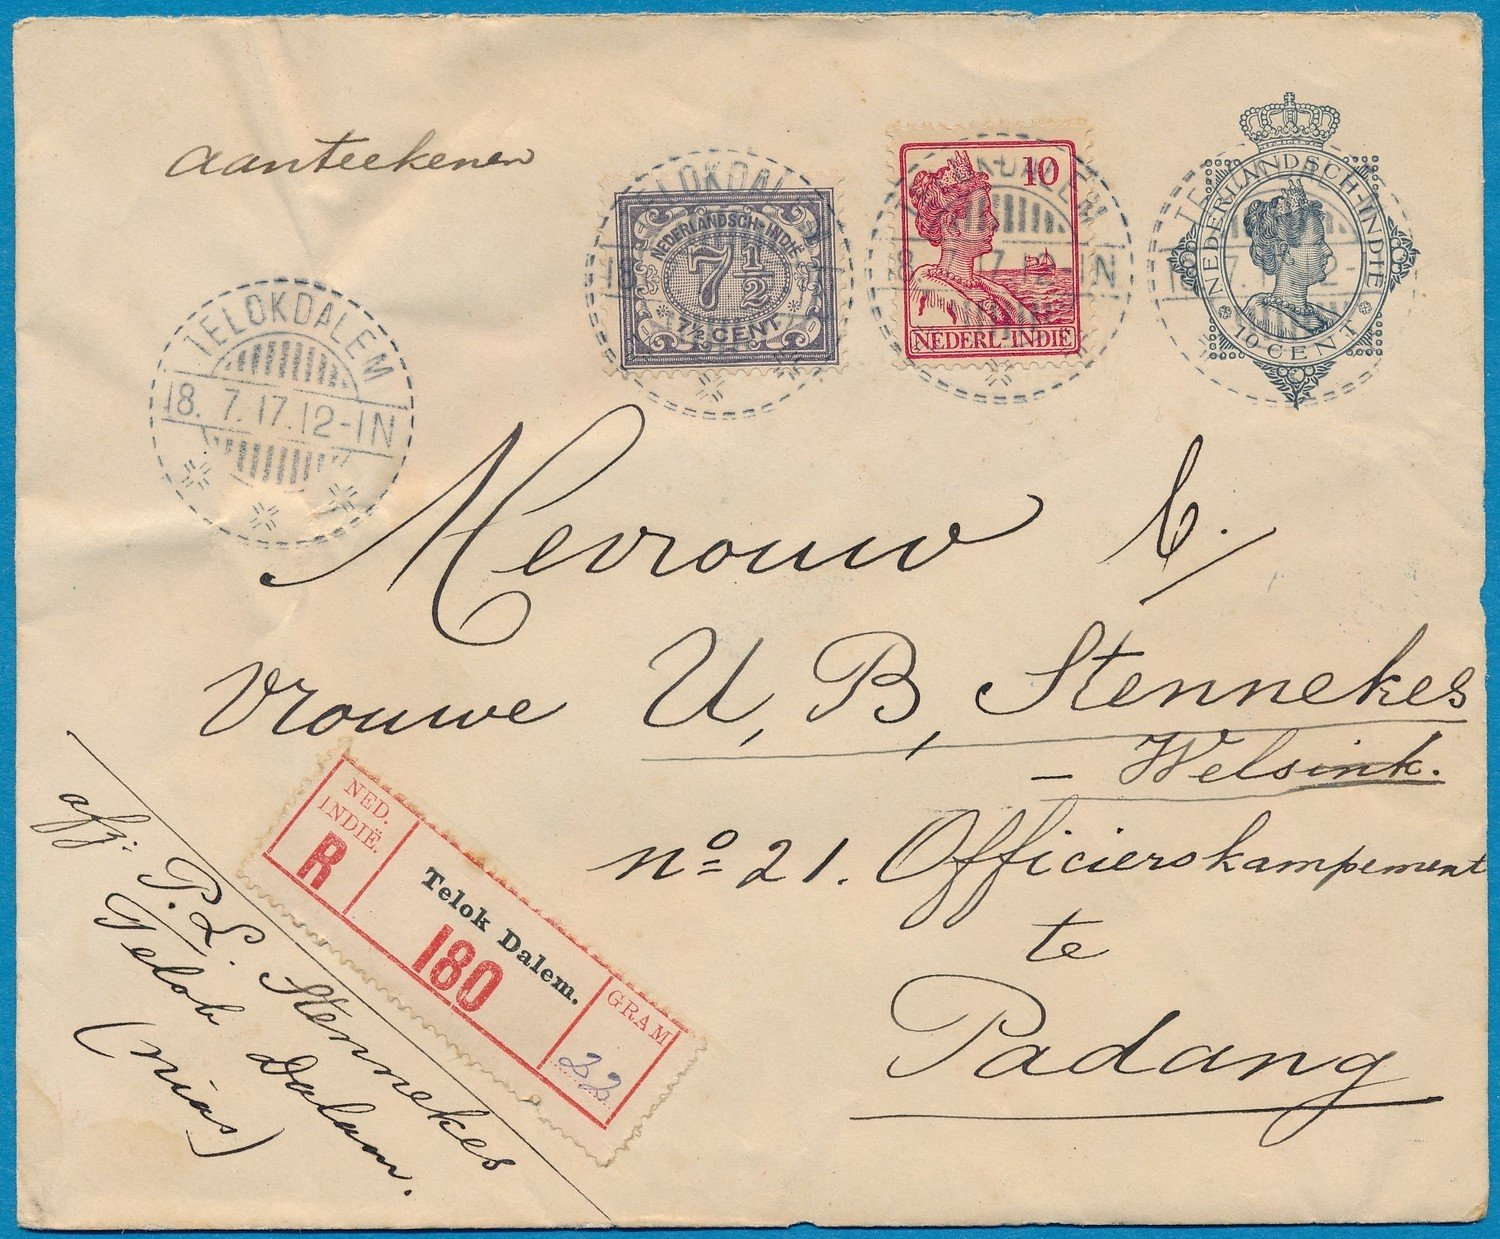 NETHERLANDS EAST INDIES R envelope 1917 Telokdalem